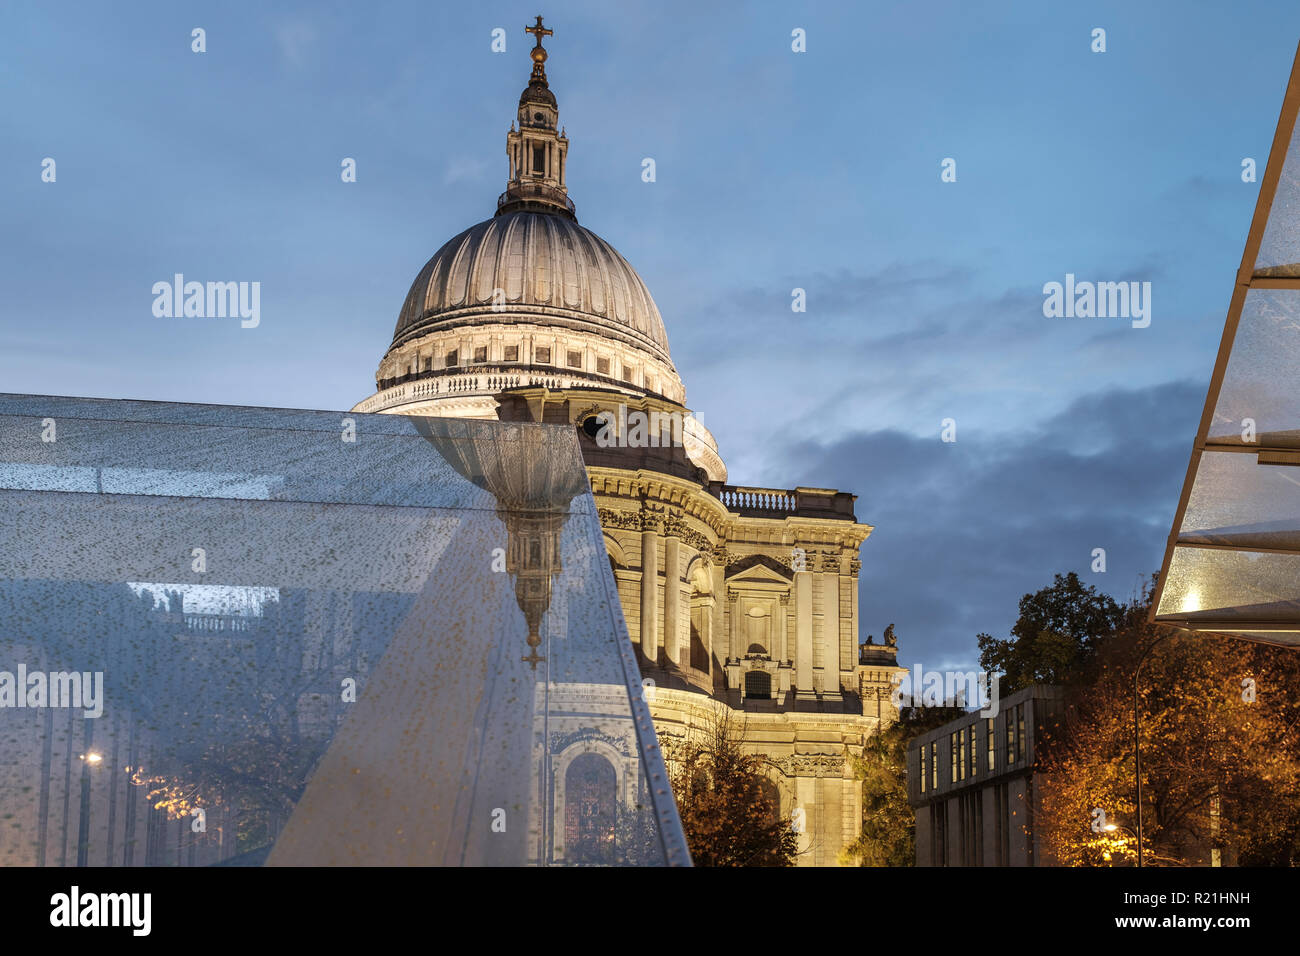 England,London,One New Change - Saint Paul's Cathedral  on a rainy building Stock Photo